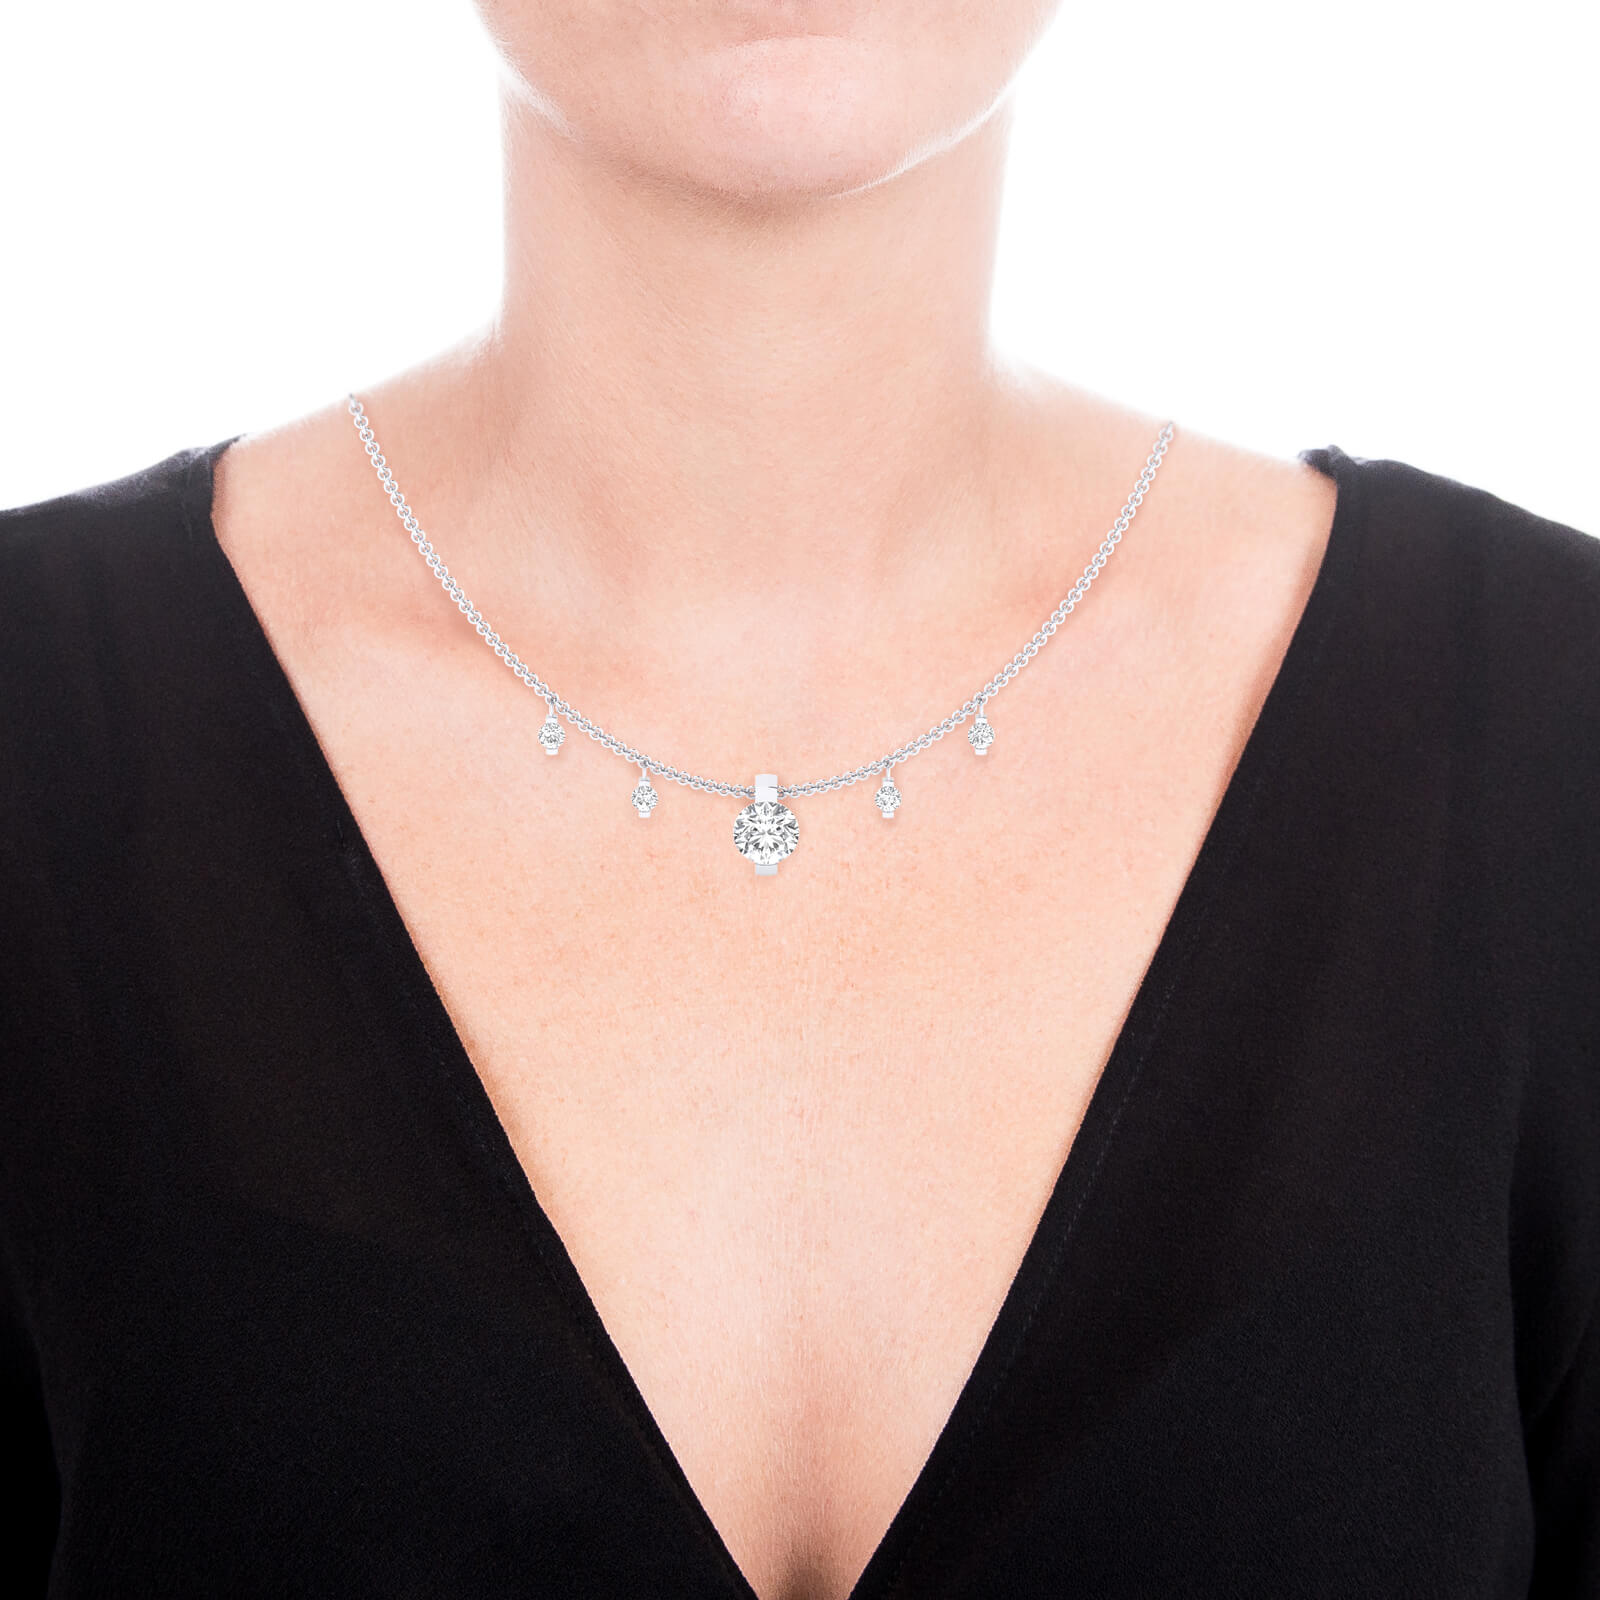 Necklaces 18k  white gold with diamonds